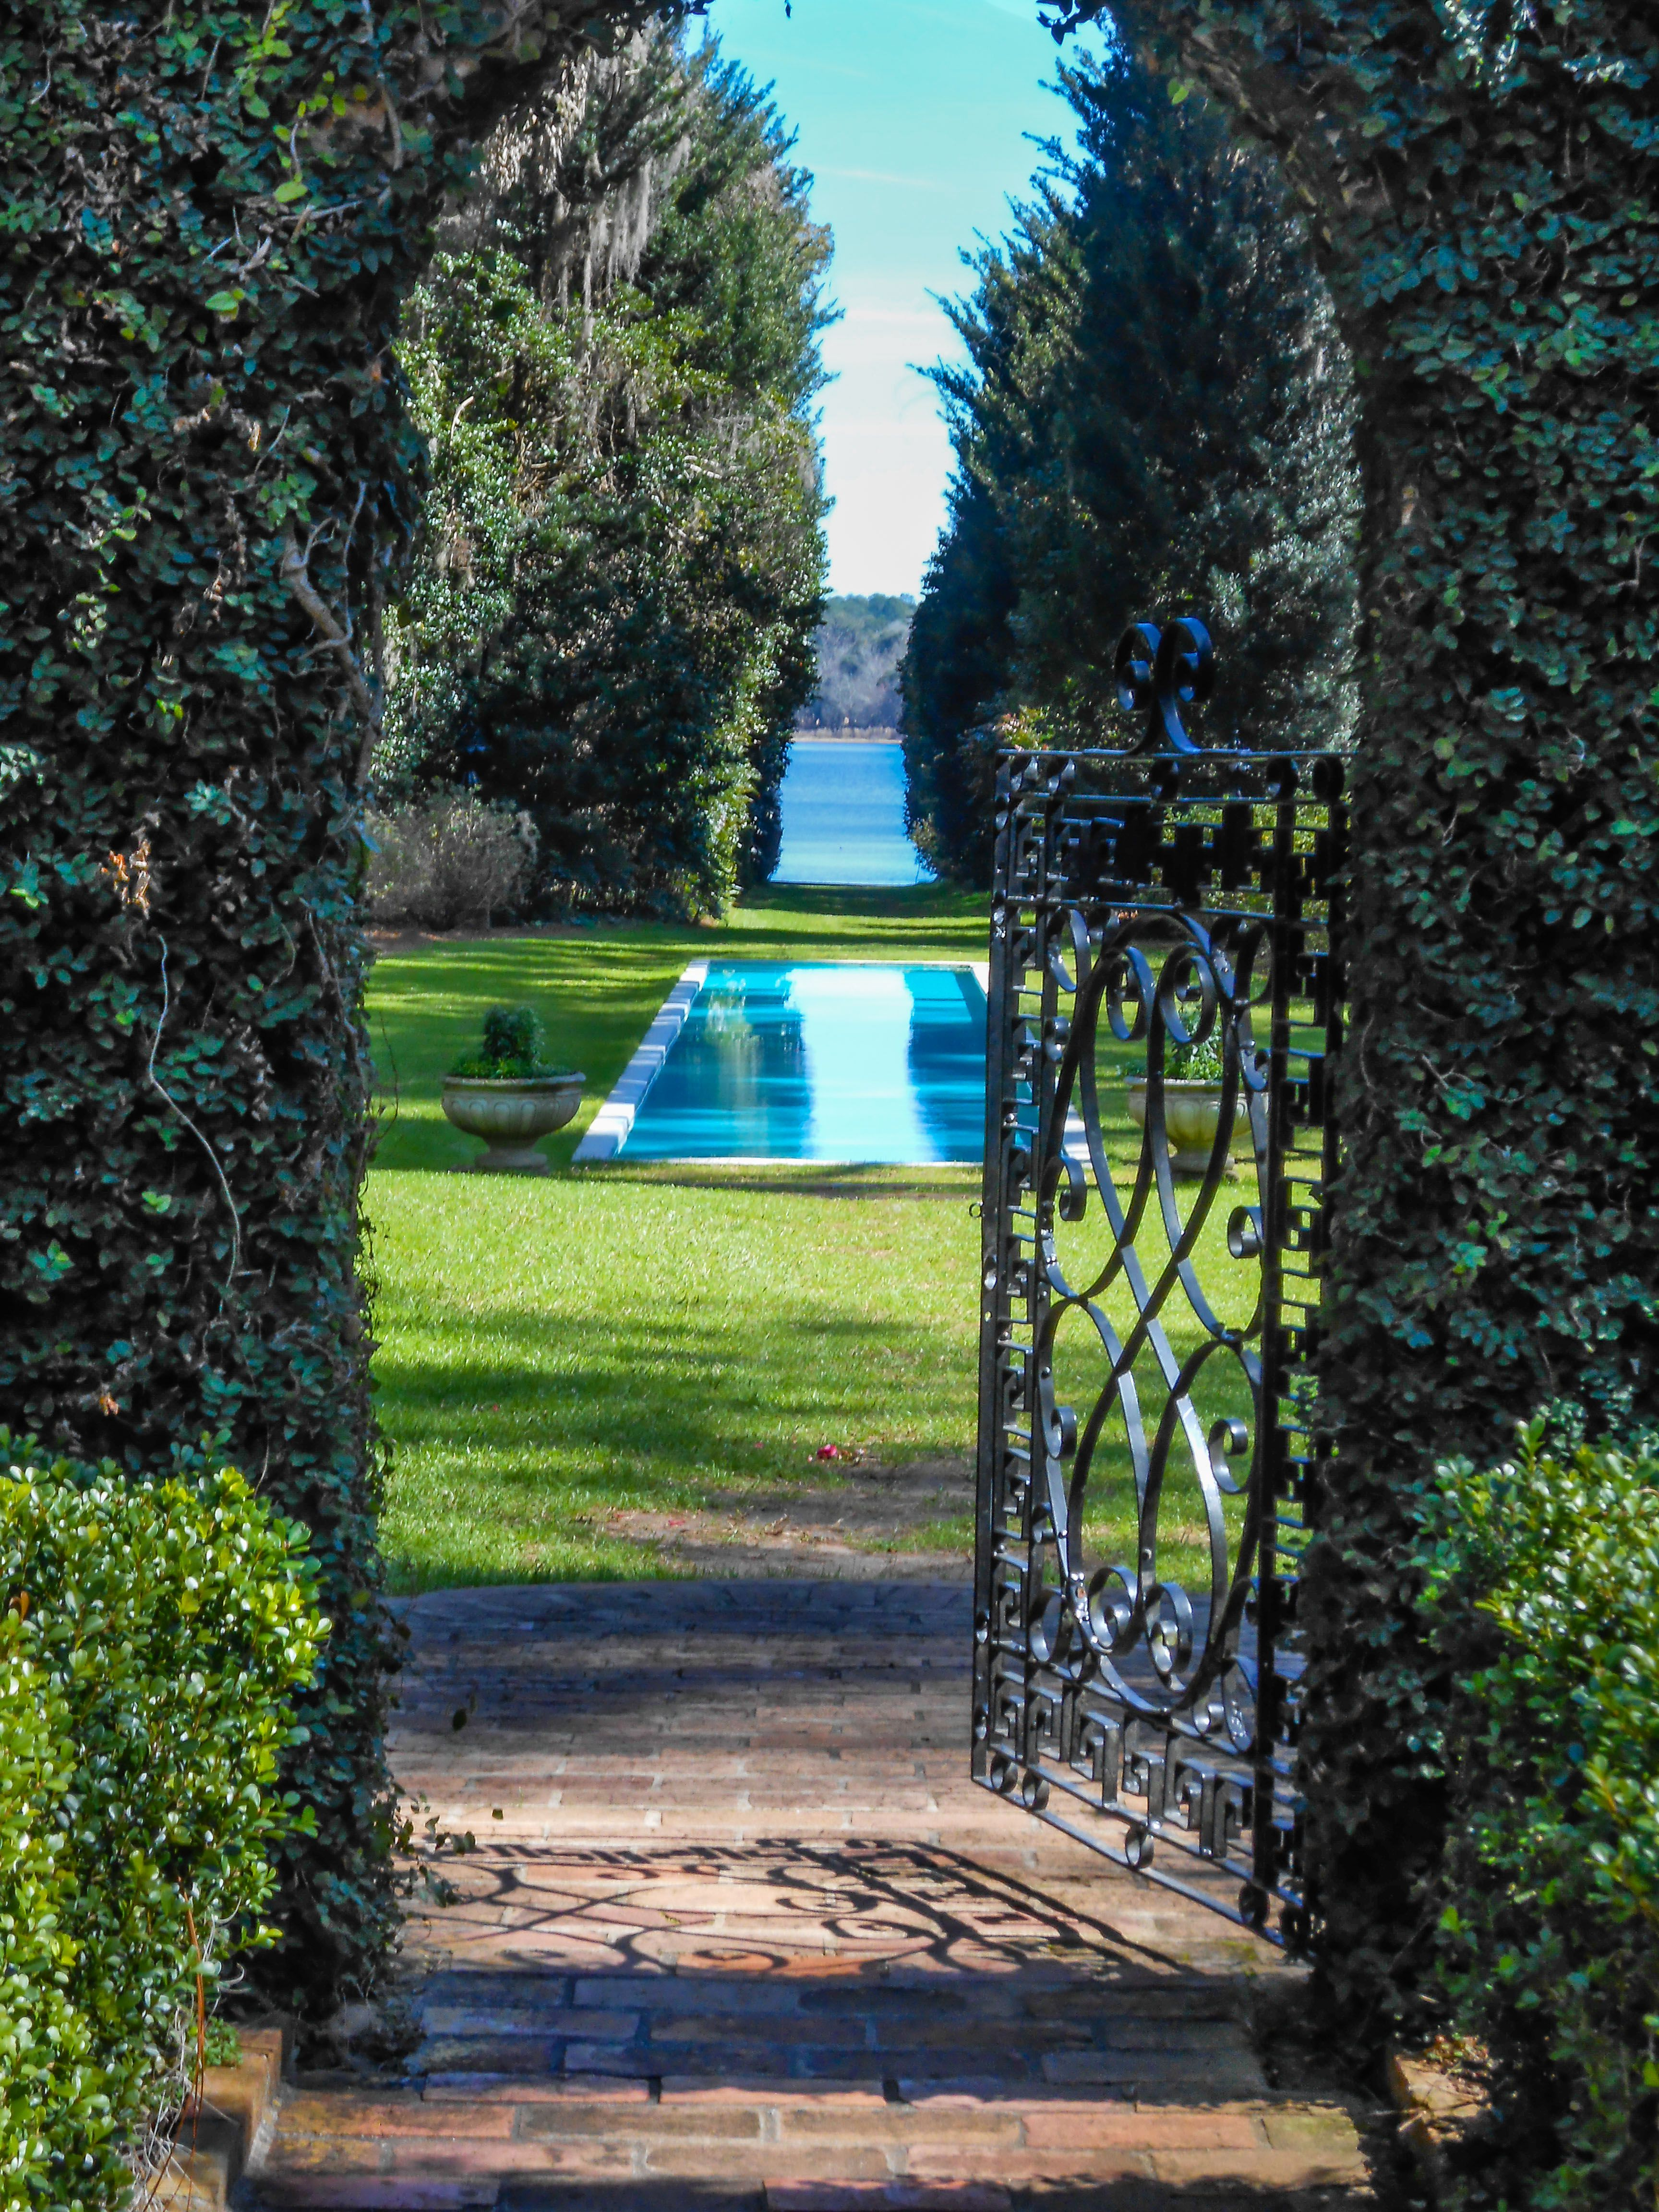 Alfred B Maclay Gardens Tallahassee Florida View From Inside Walled Garden Overlooking The Reflection Pool In Th Fl Vacations Places In Florida Tallahassee